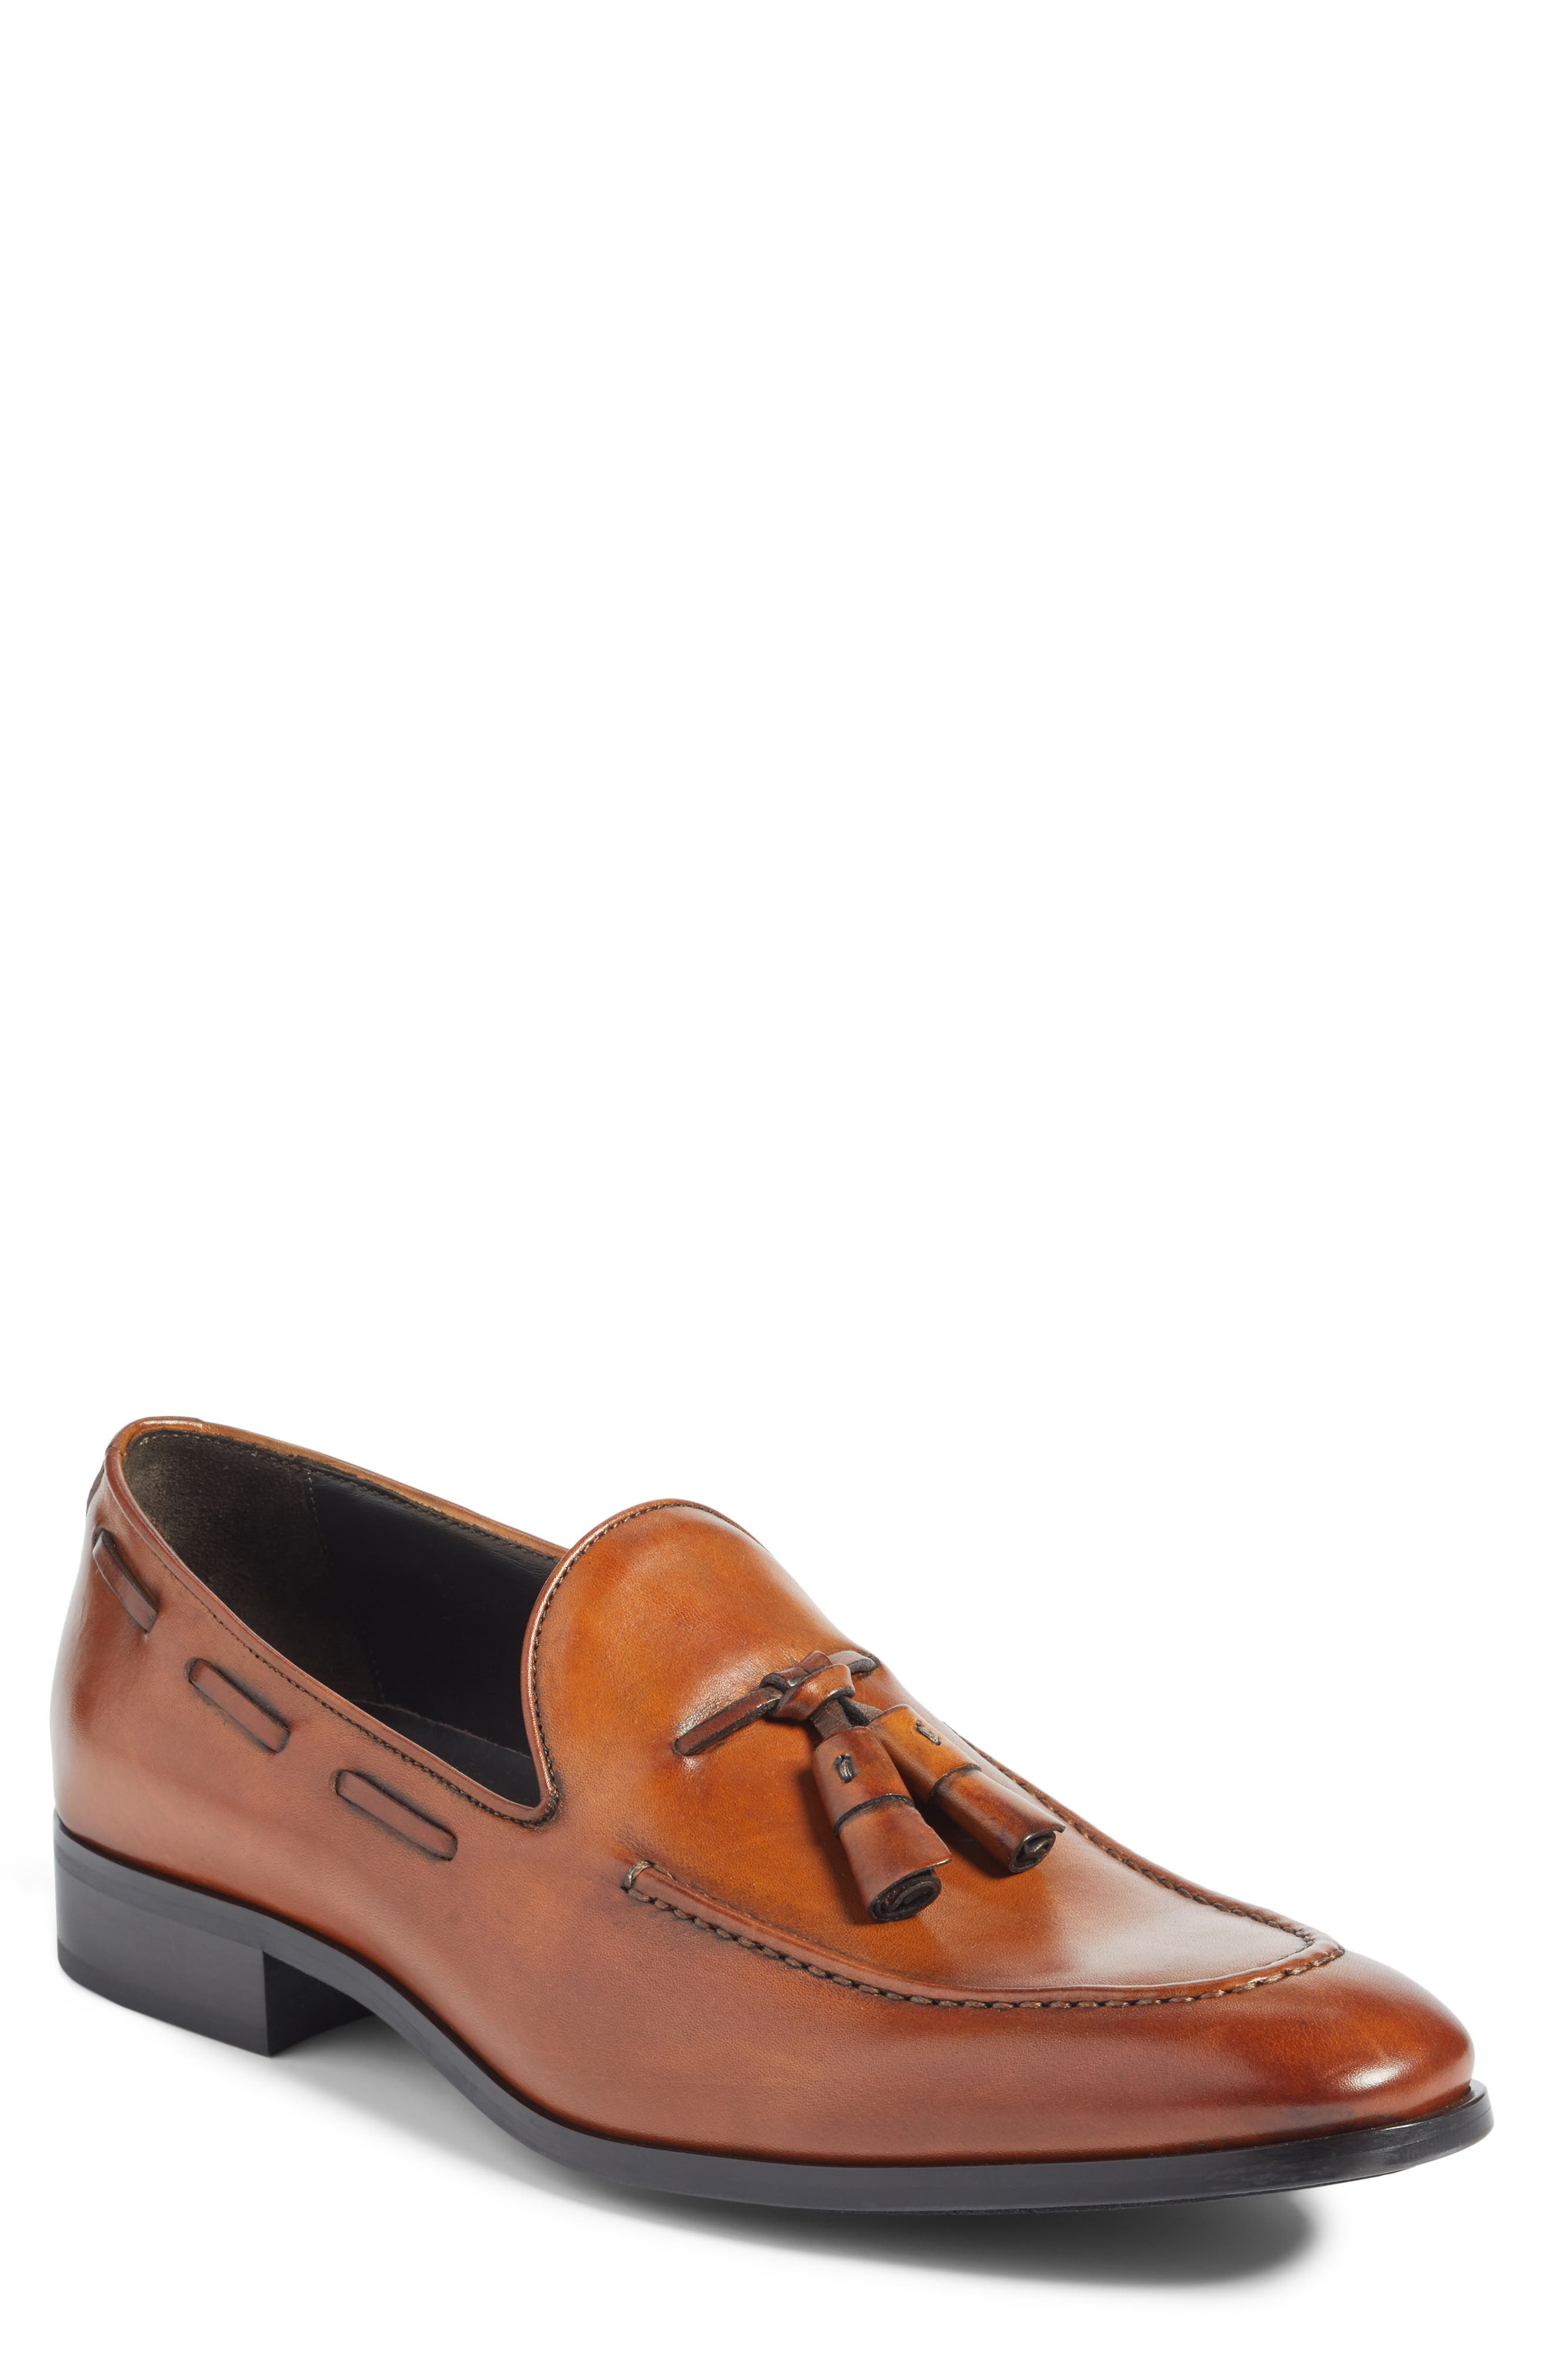 Barclay Tassel Loafer,                             Main thumbnail 1, color,                             COGNAC LEATHER